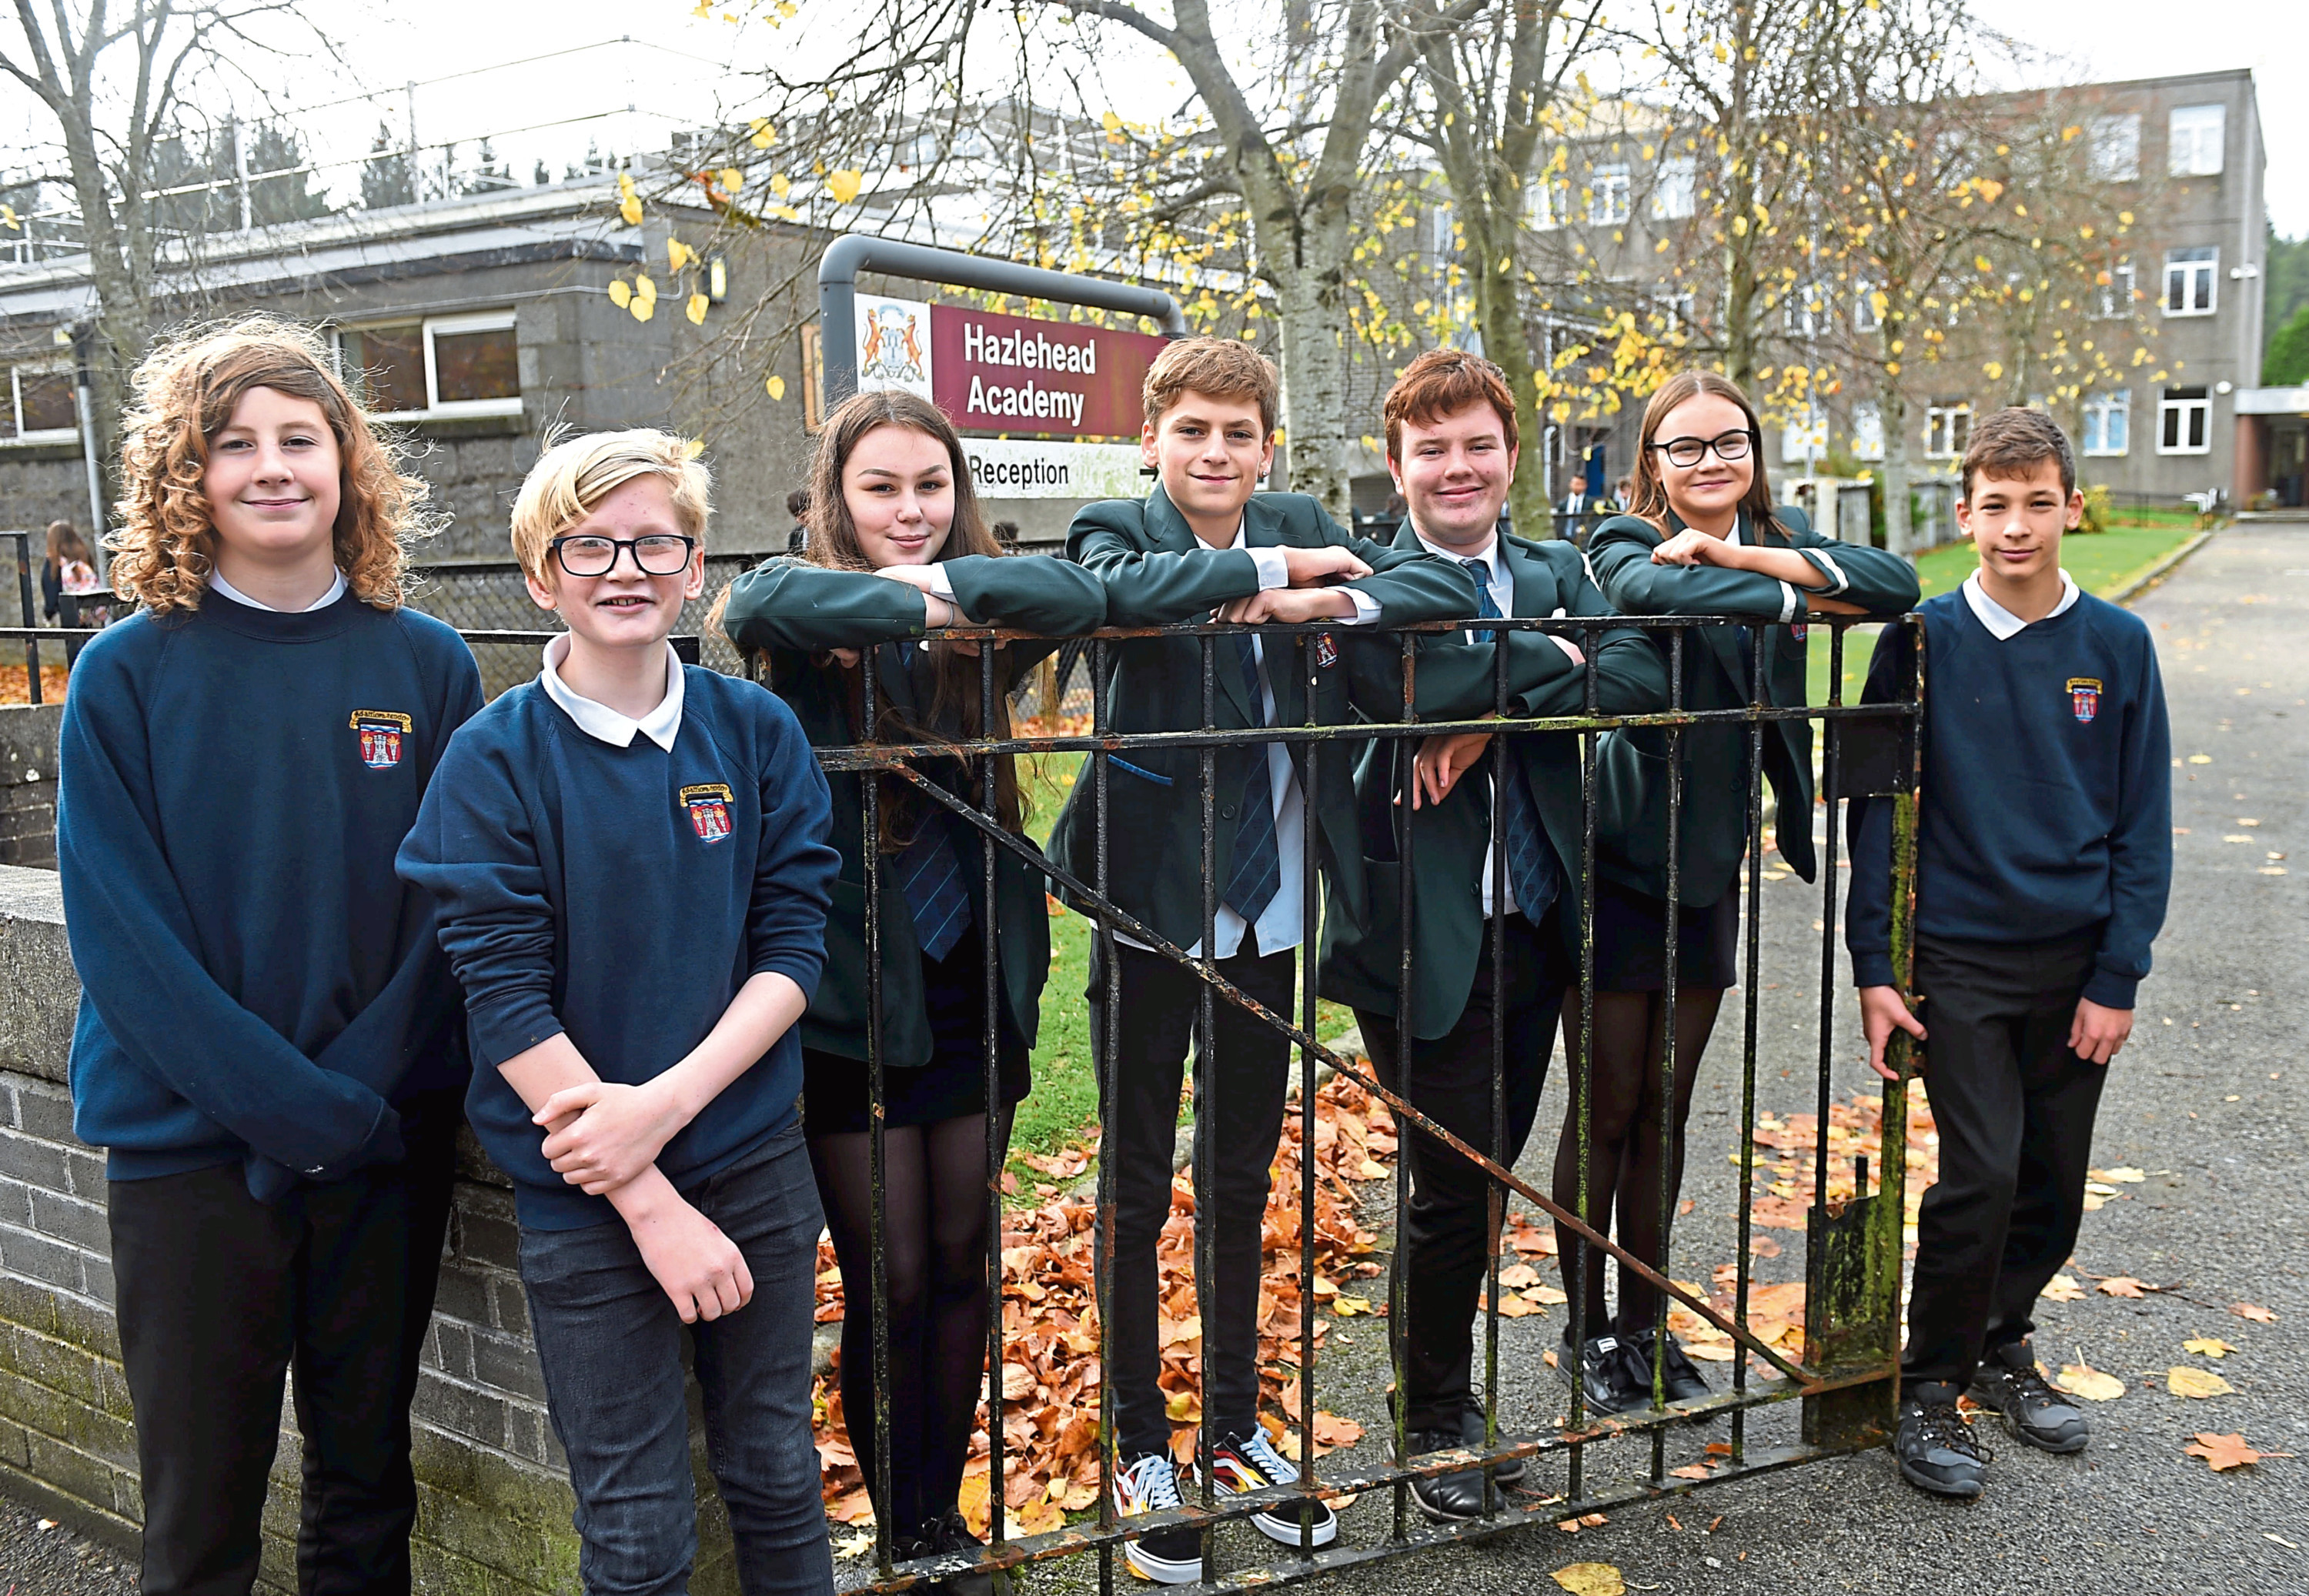 A group of youngsters from an Aberdeen school stopped to help a woman in distress.